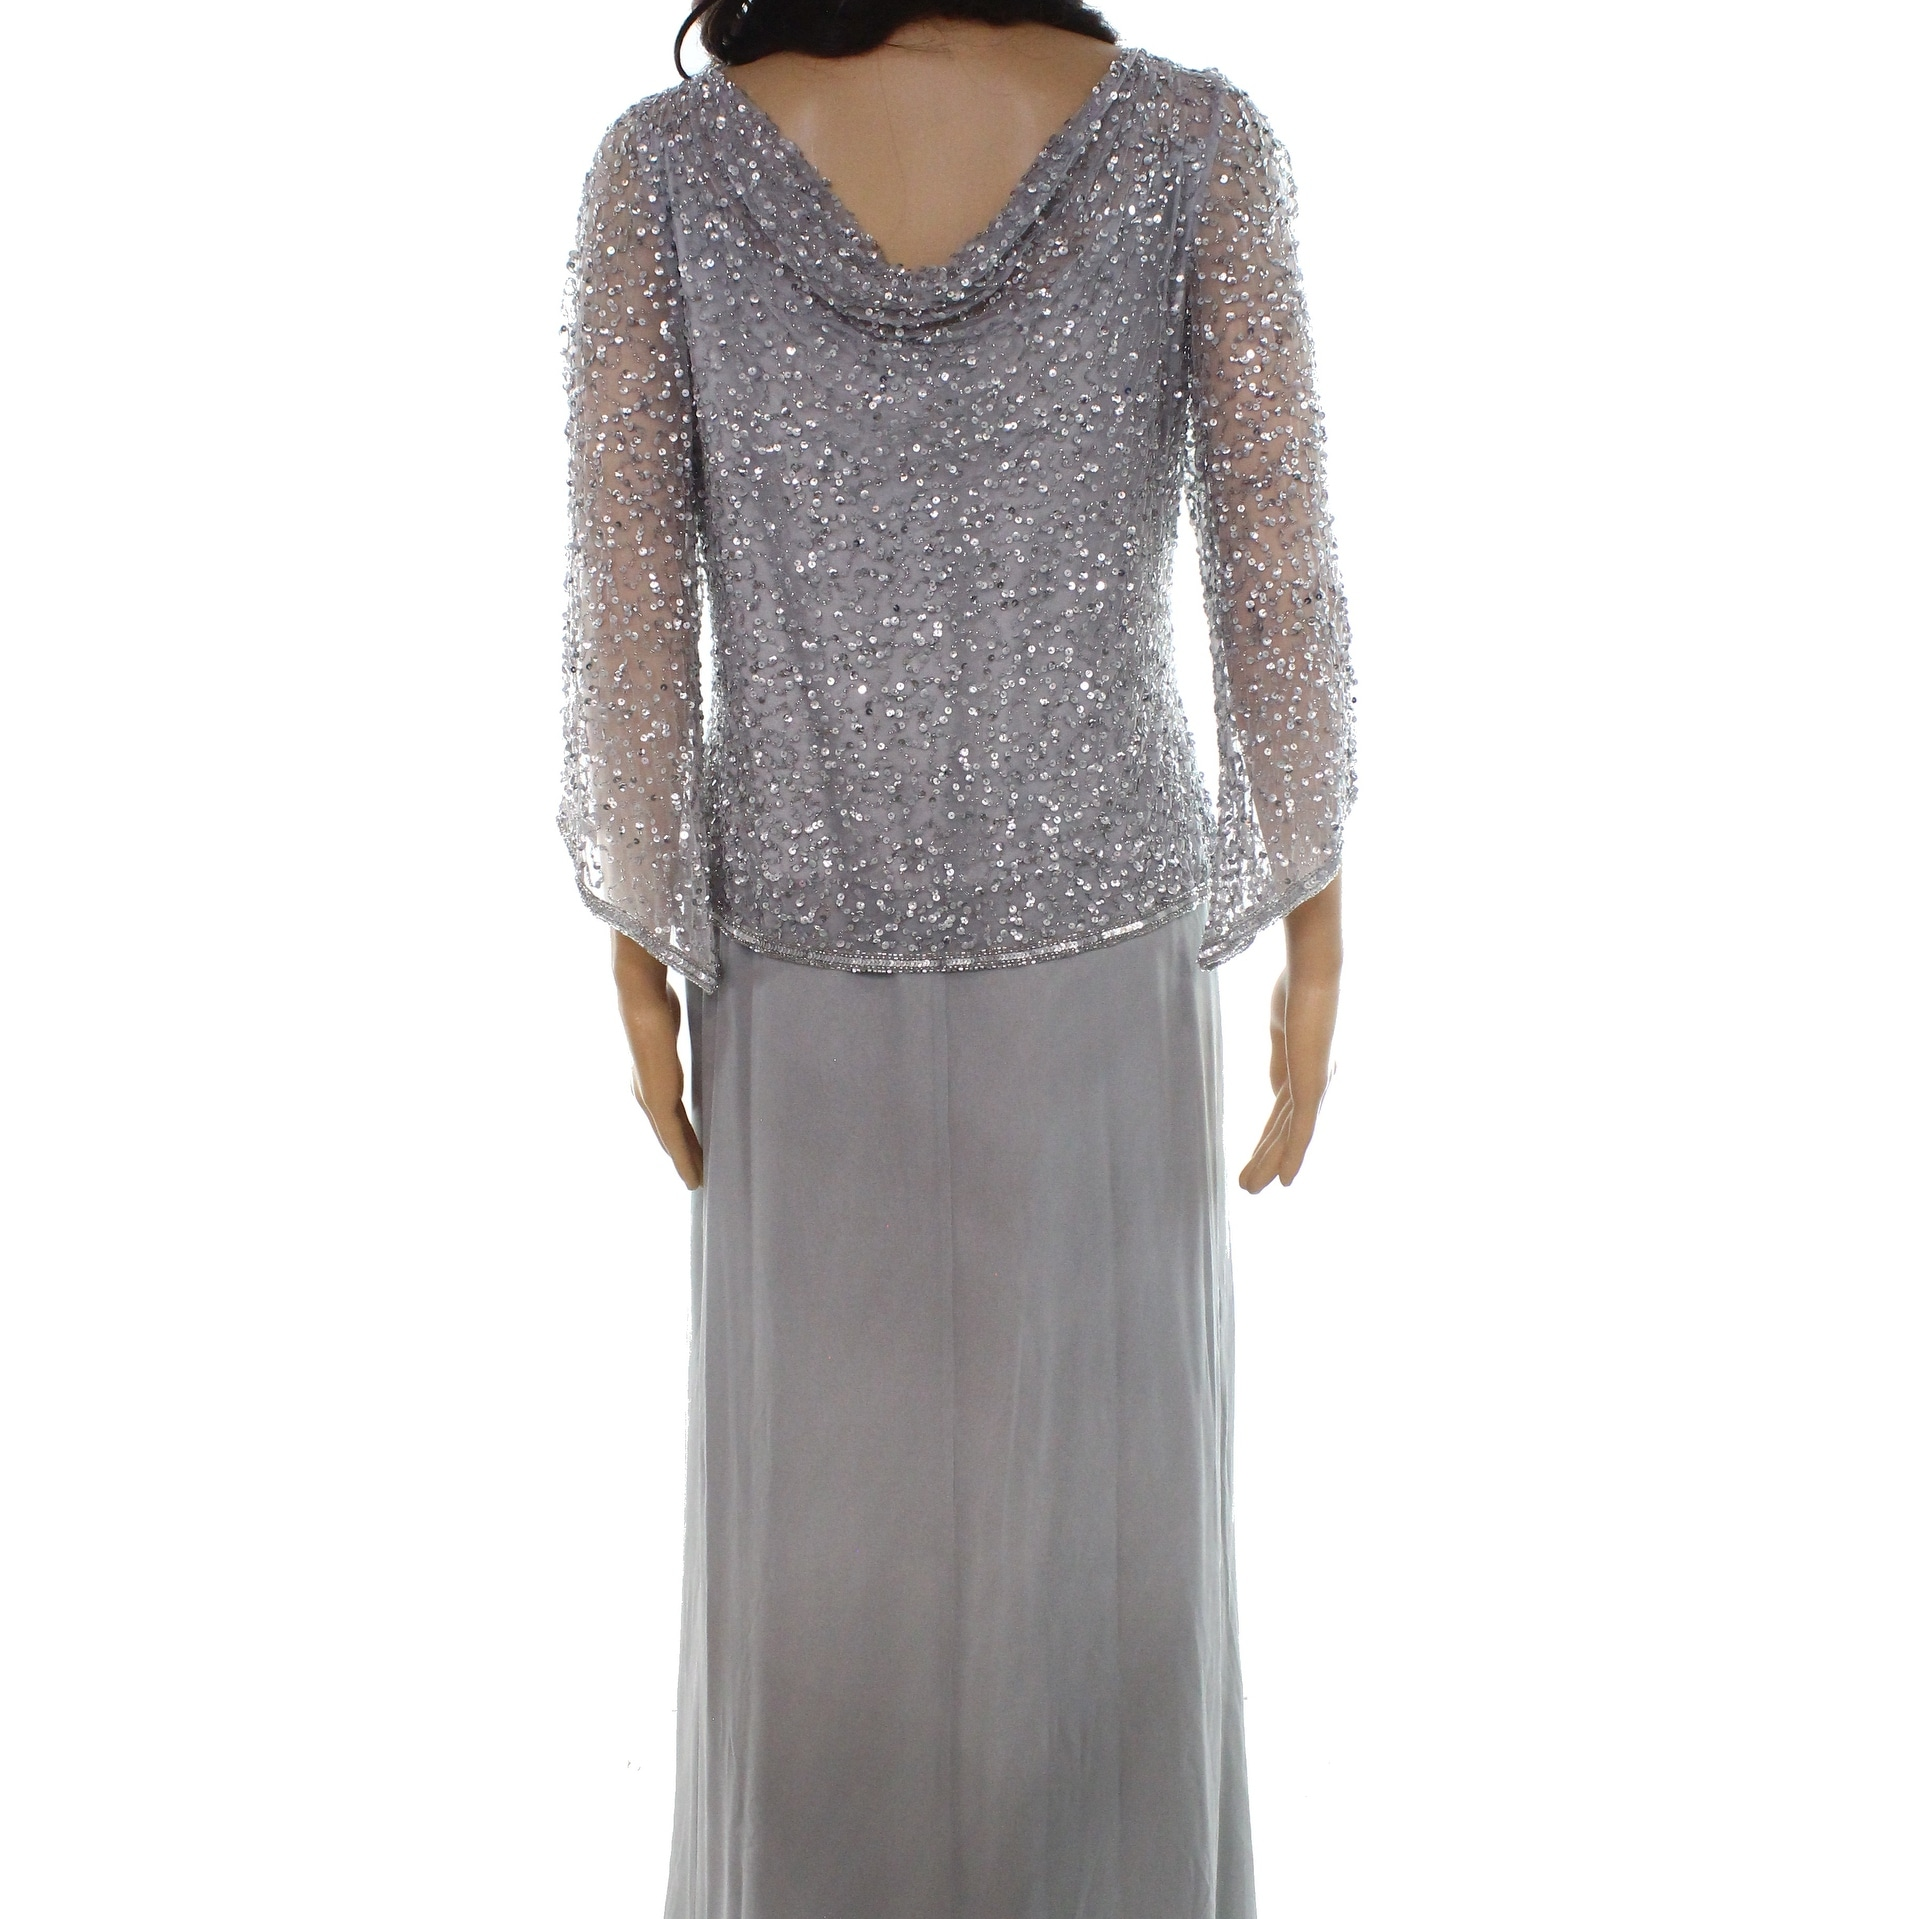 d2a6da81860 Shop J Kara Womens V-Neck Embellished Sequin Gown Dress - Free ...